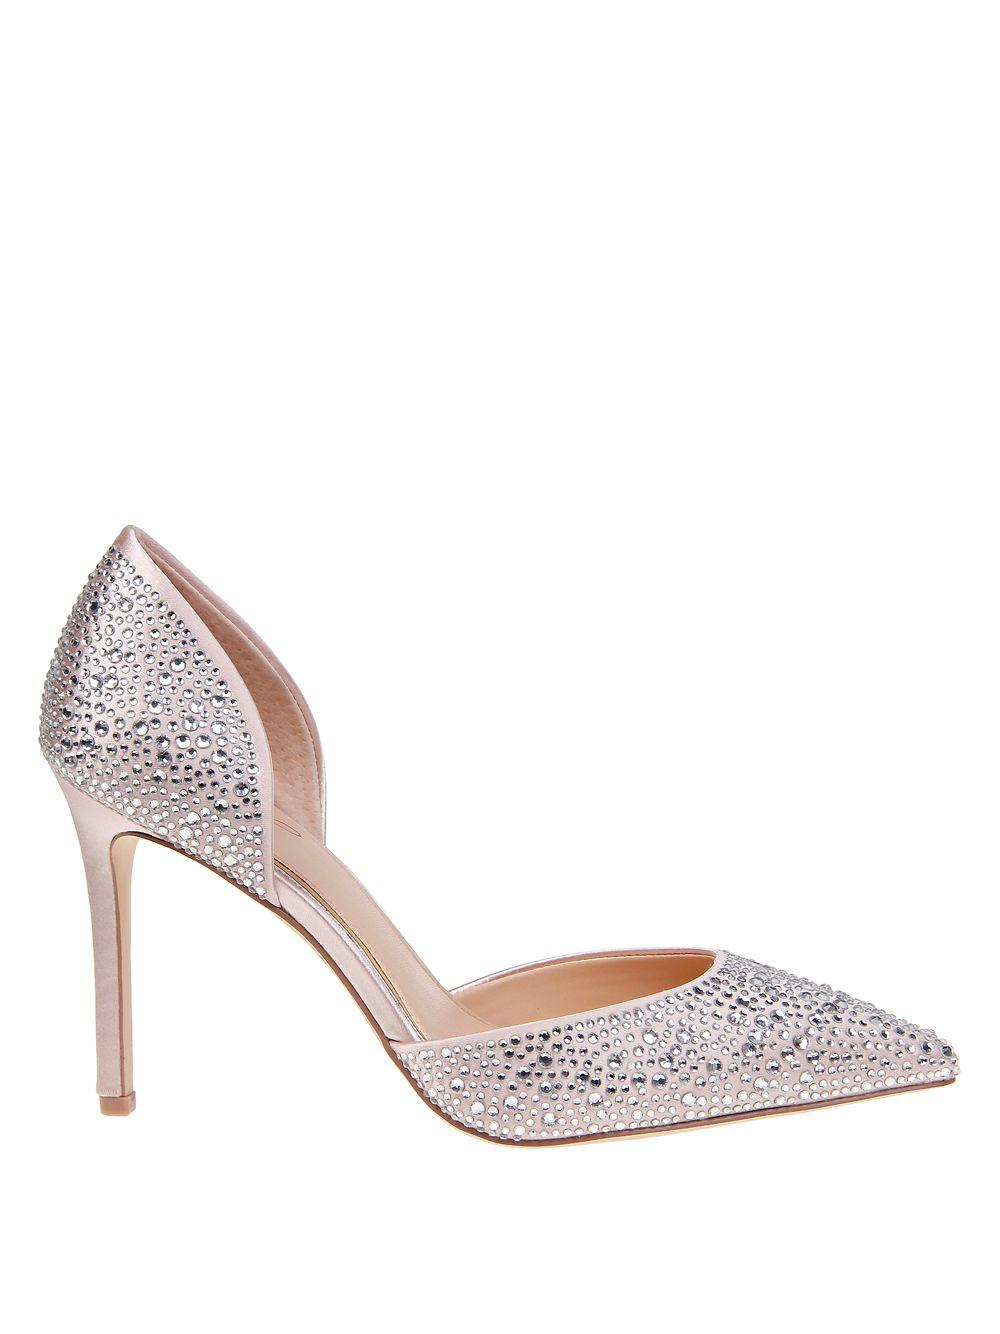 Badgley Mischka Women's Alexandra D'Orsay Pump